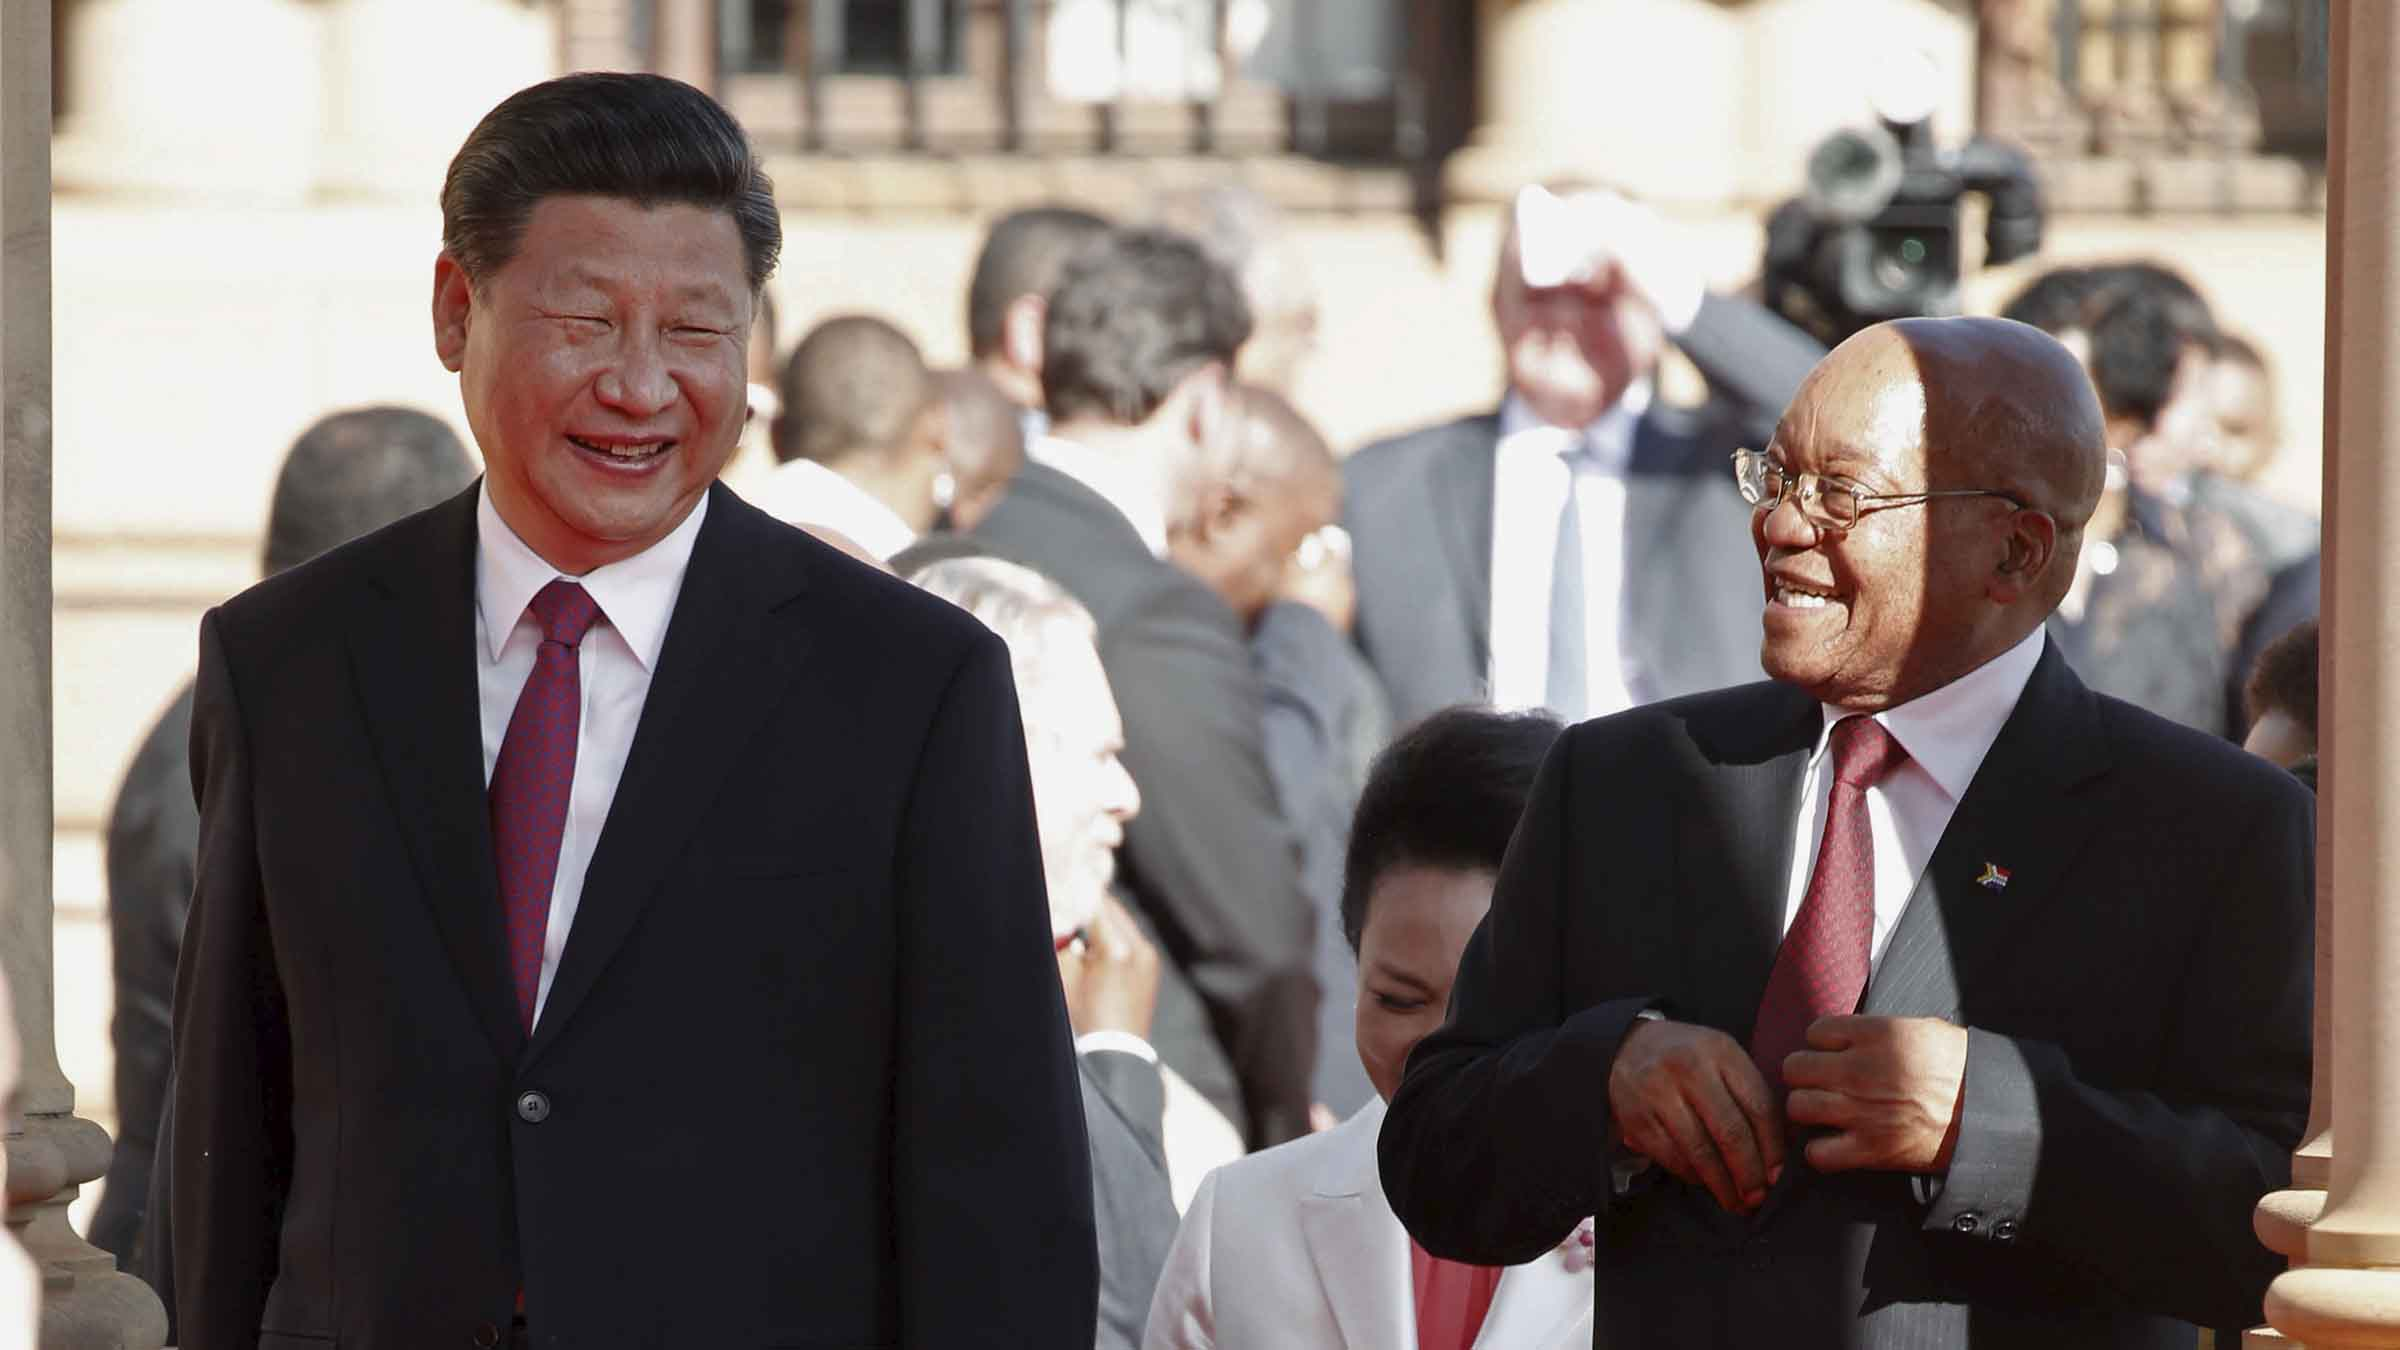 Chinese President Xi Jinping walks with South African President Jacob Zuma upon his arrival at the Union Buildings in Pretoria